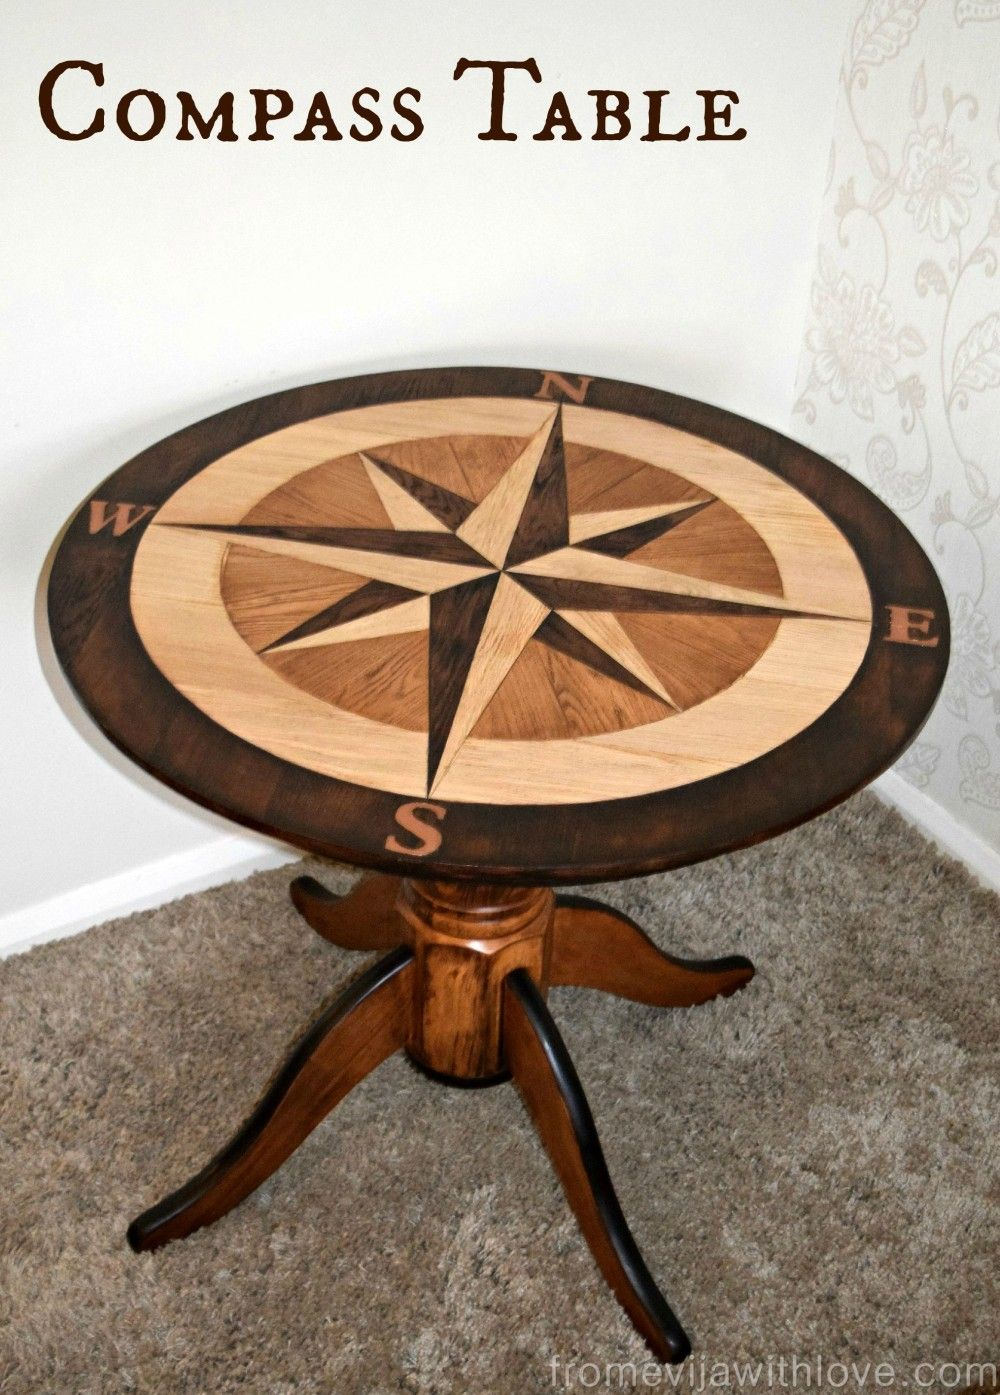 diy compass table - fffc september contest geometric design